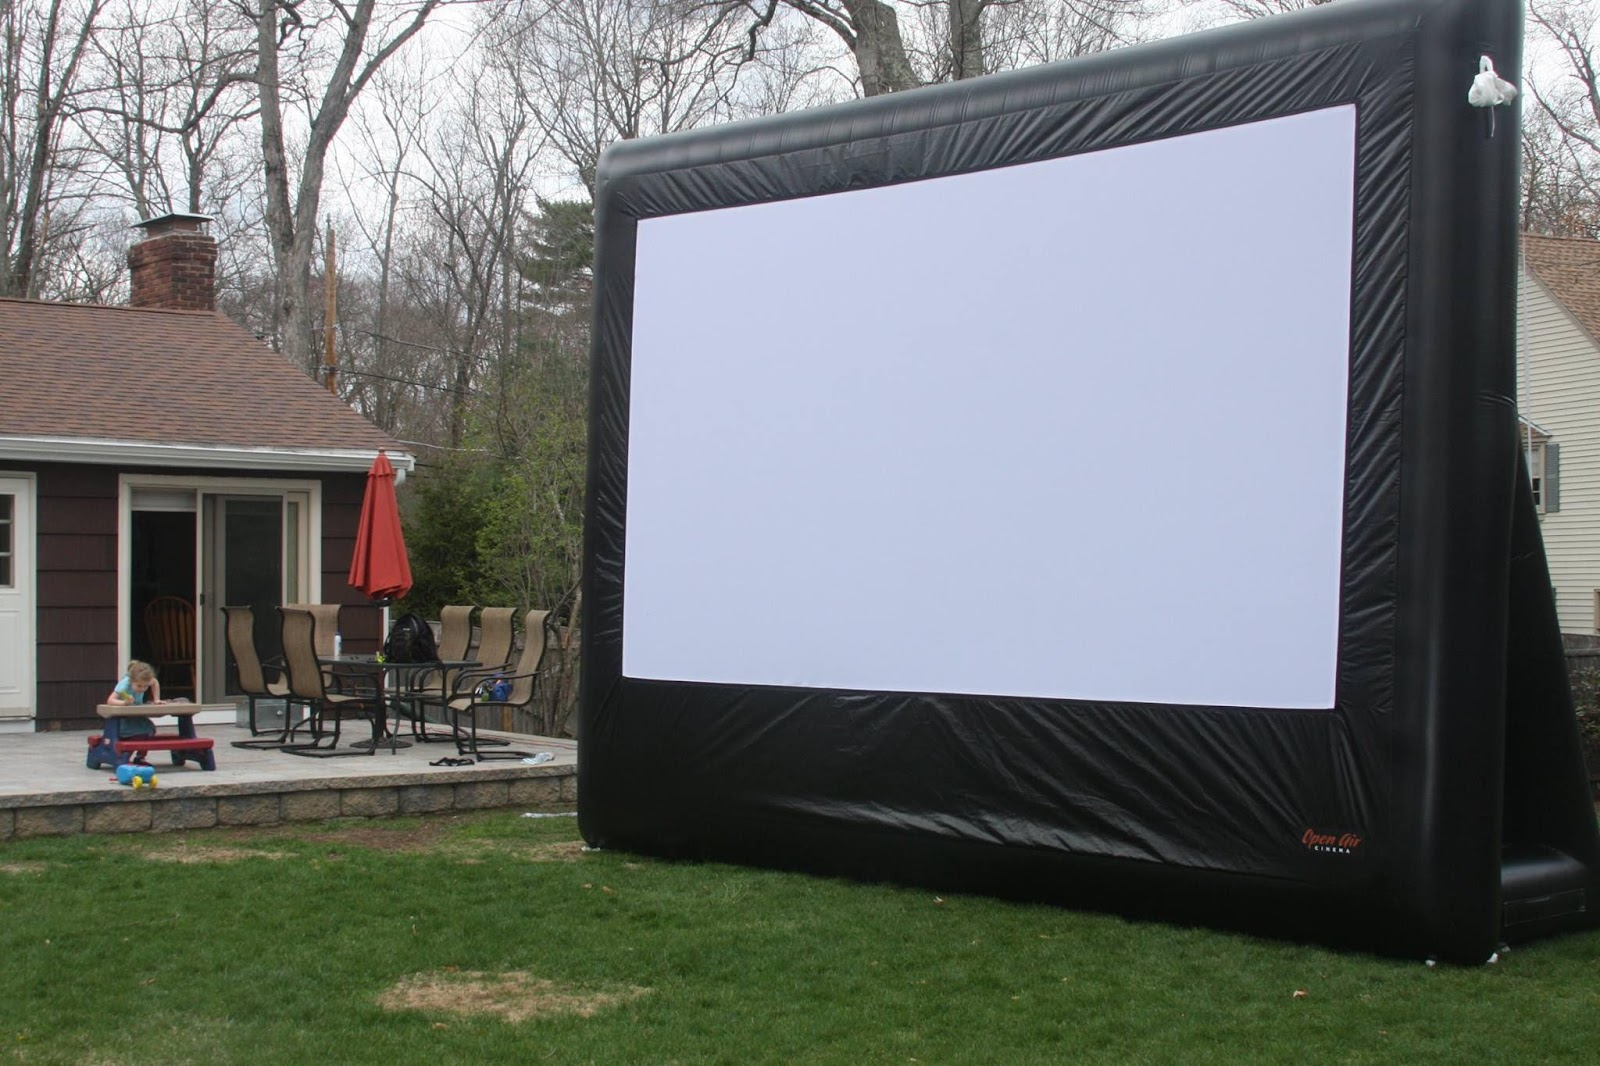 giant inflatable movie screen, Boston, were you Team Brenda or Team Kelly?, Press Play Outdoors Blog